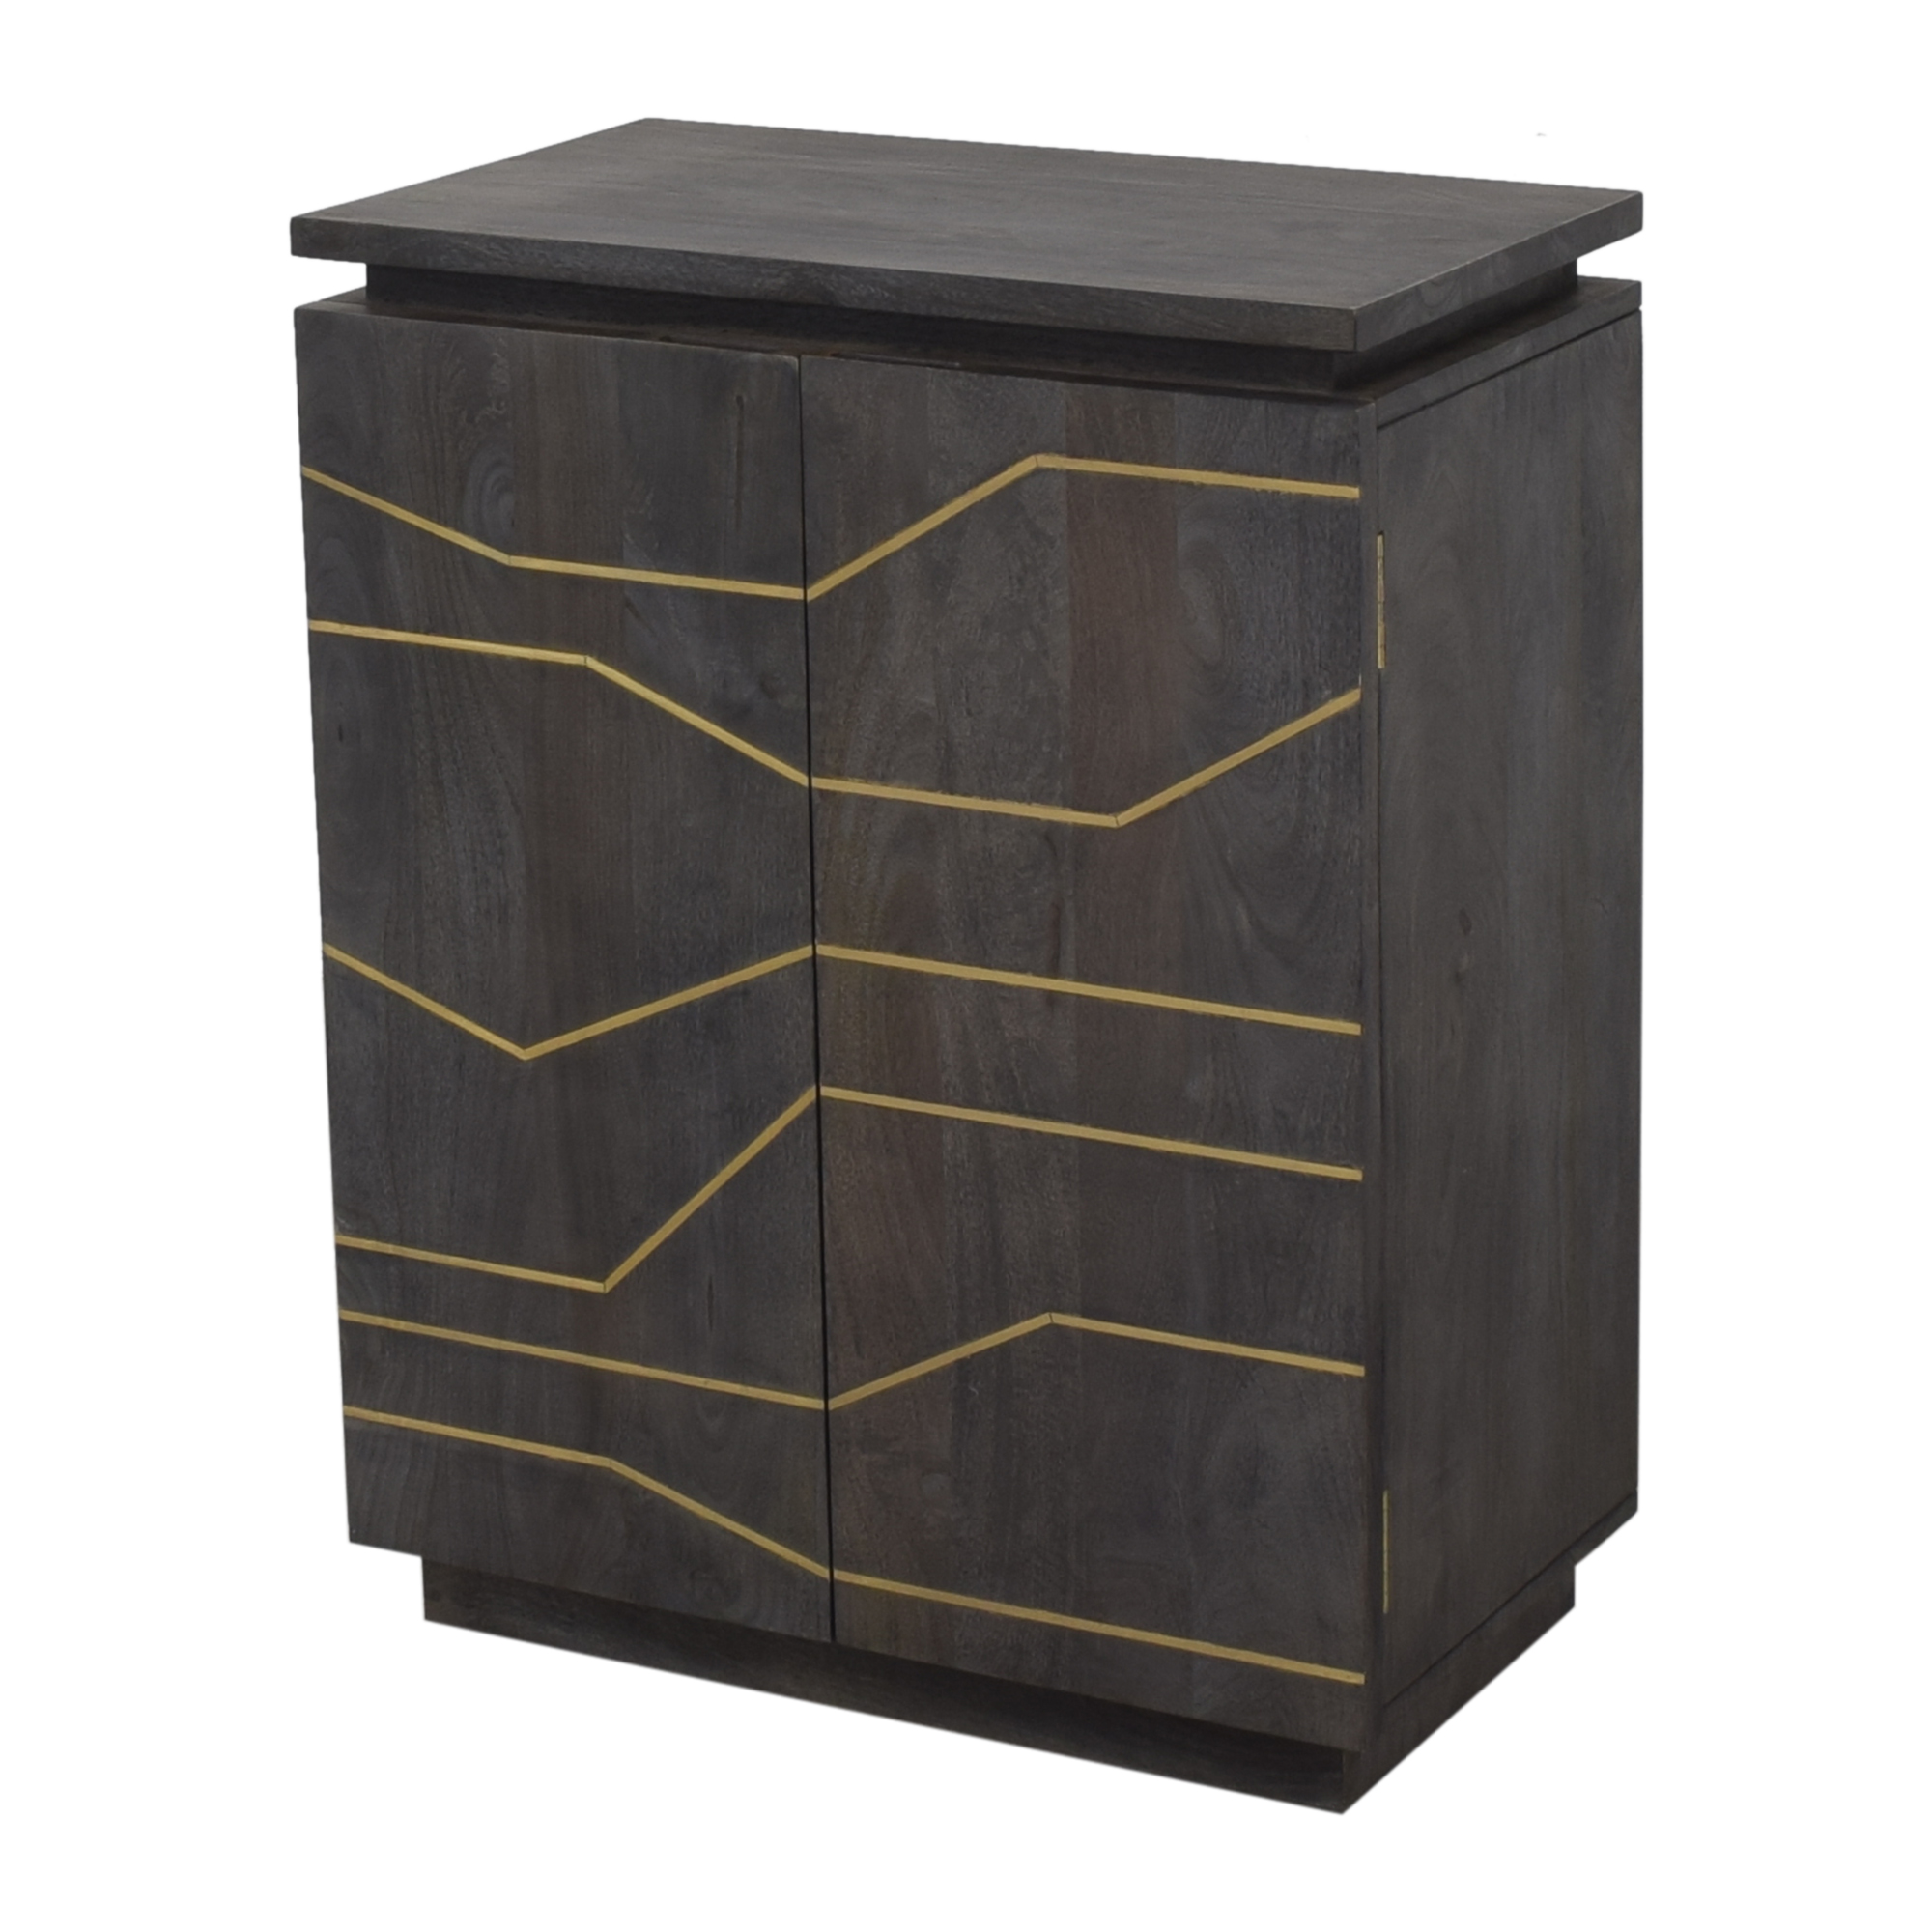 CB2 CB2 Two Door Cabinet Cabinets & Sideboards